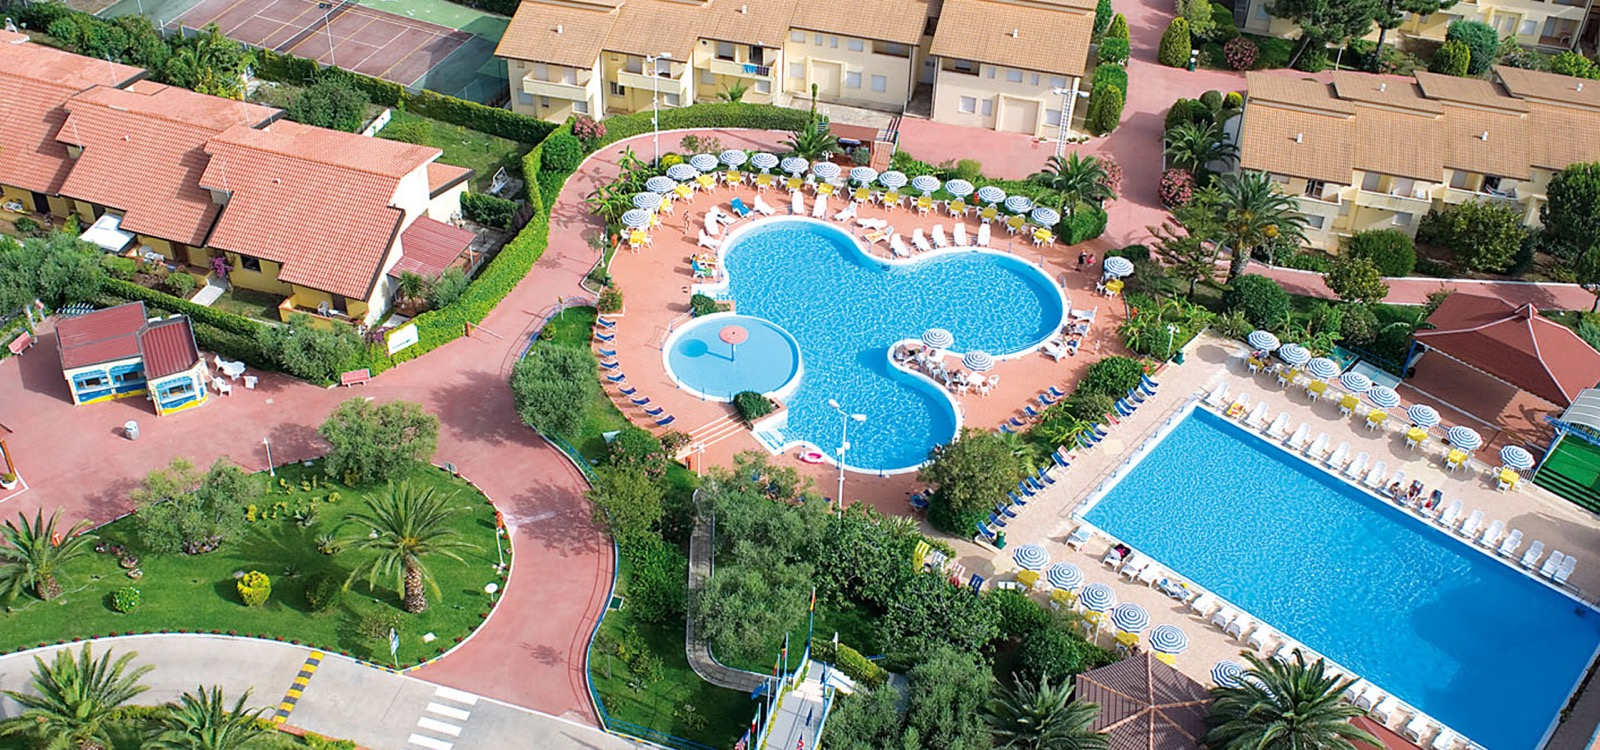 Offerta estate 2019 Villaggio Club la Pace